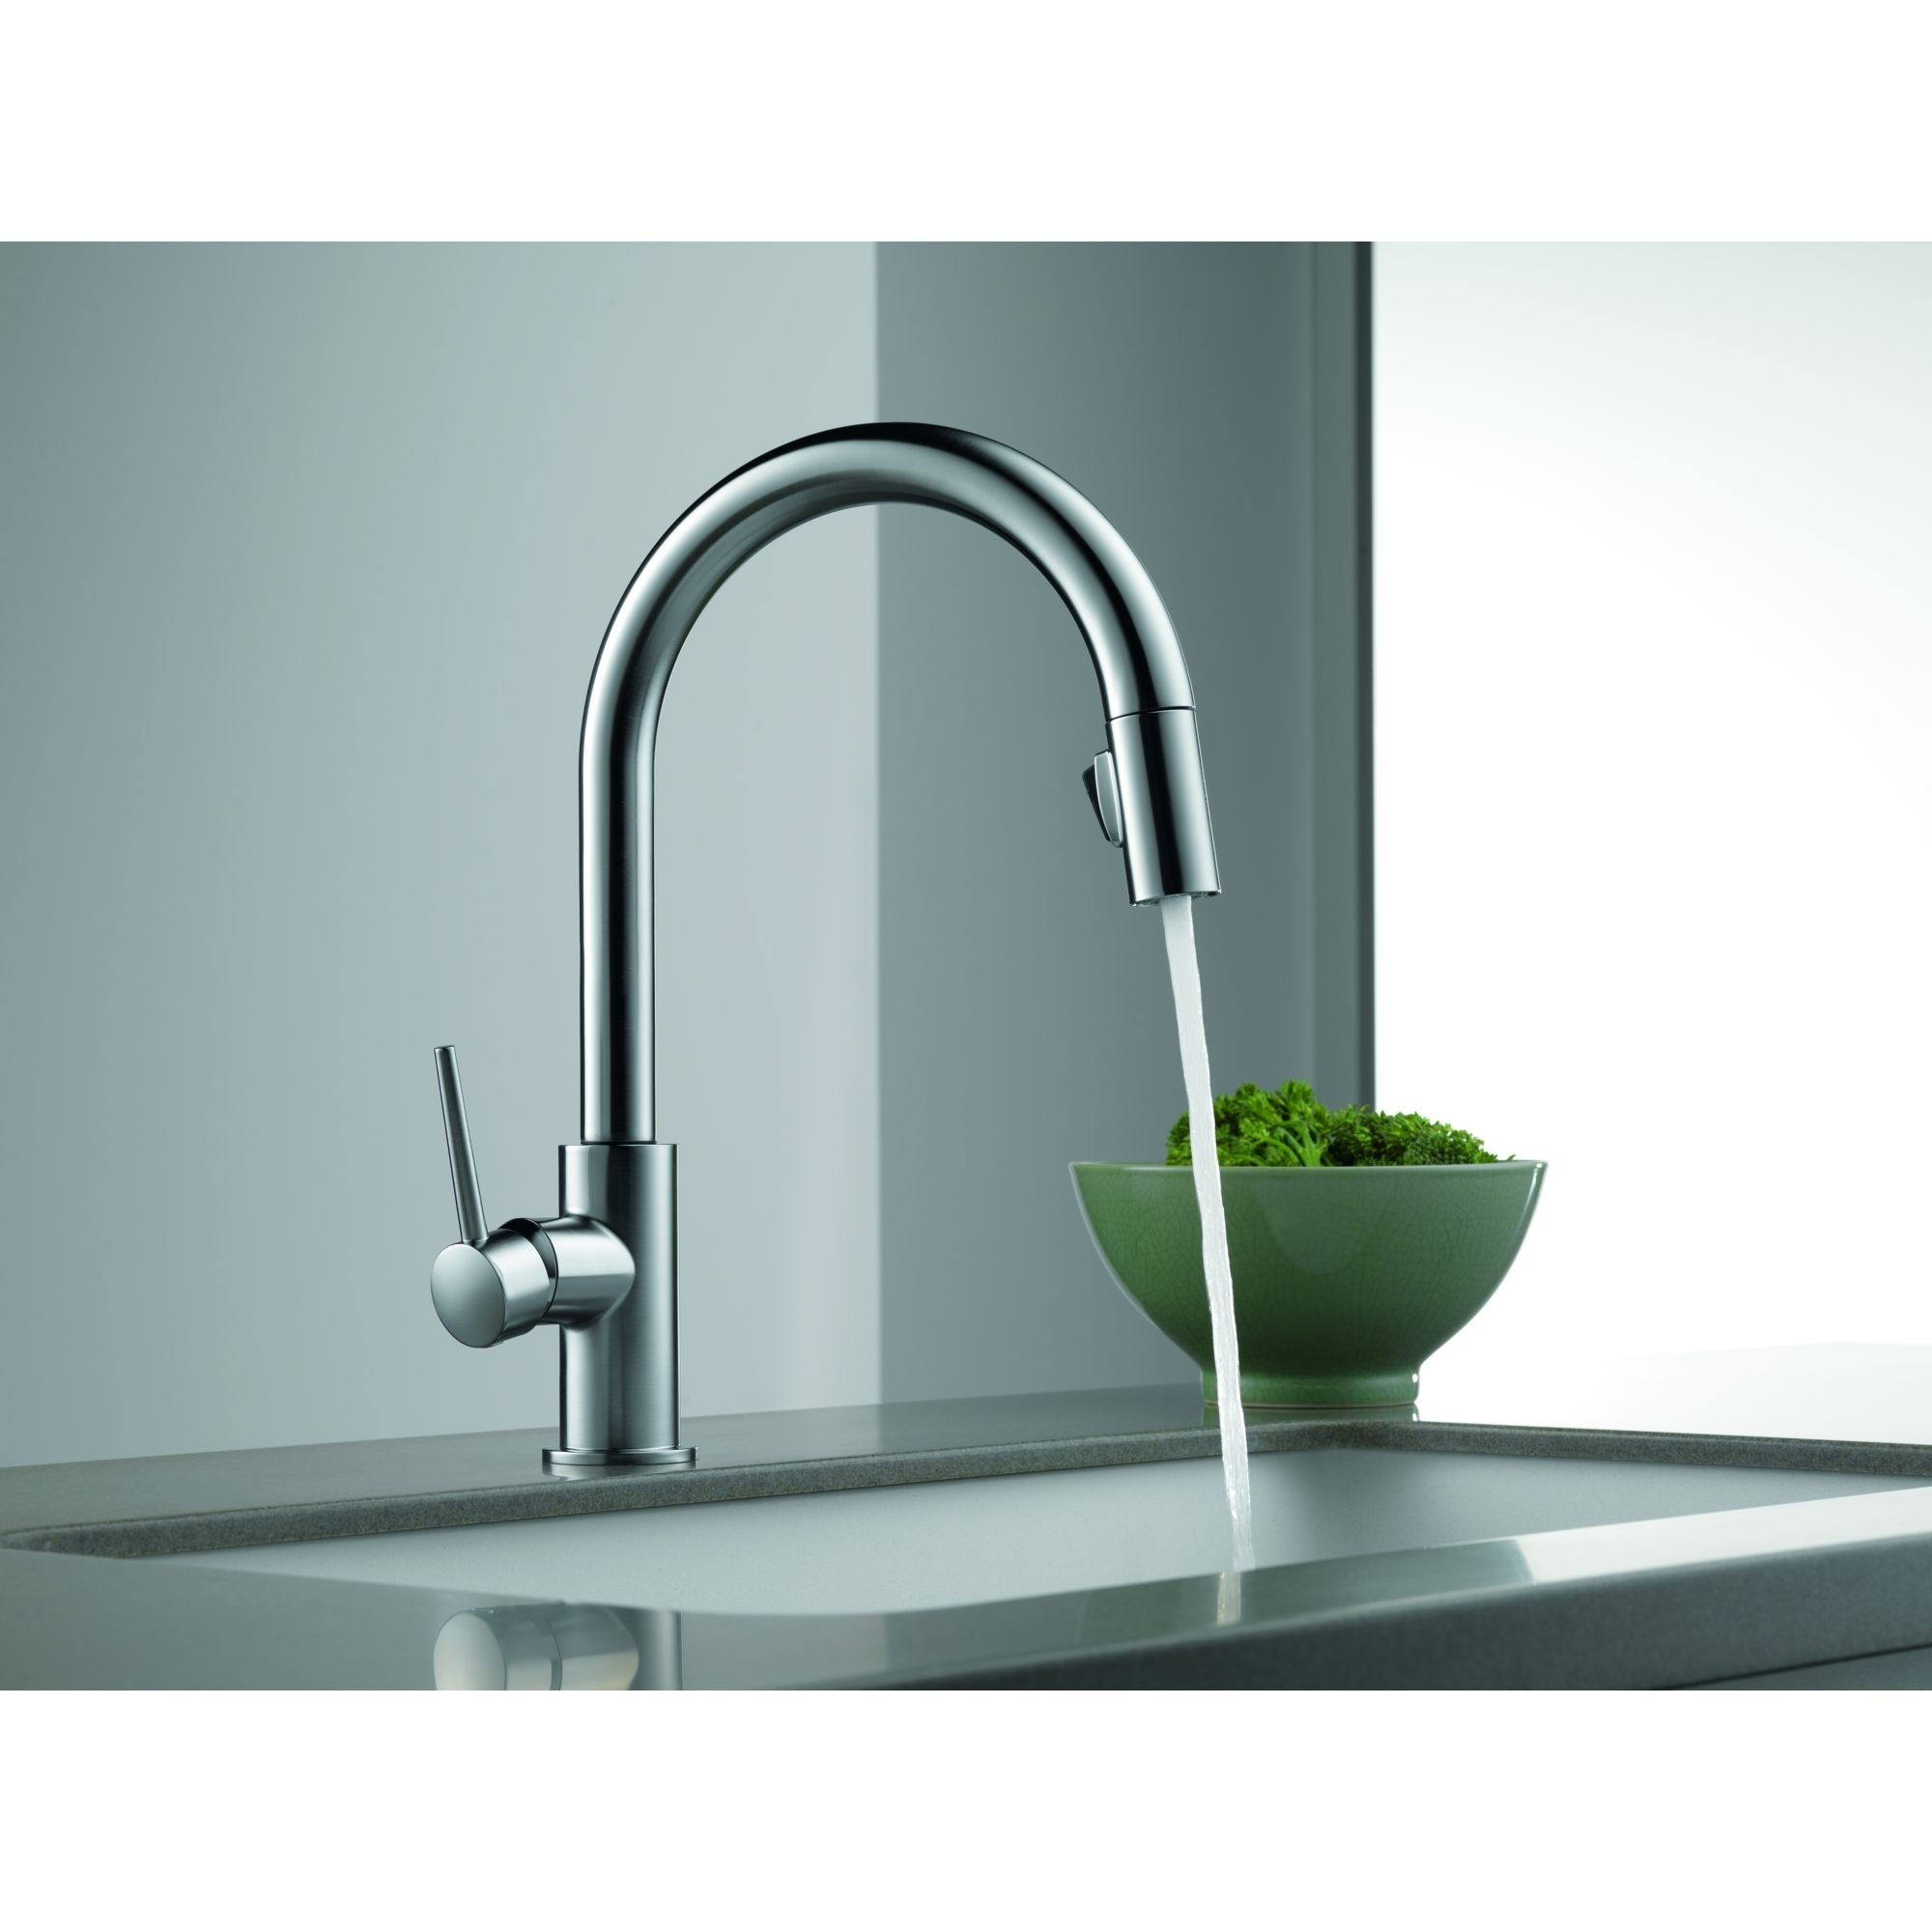 Ideas, grohe classic bathroom faucet grohe classic bathroom faucet decor fabulous grohe faucets for contemporary kitchen decoration 2000 x 2000  .